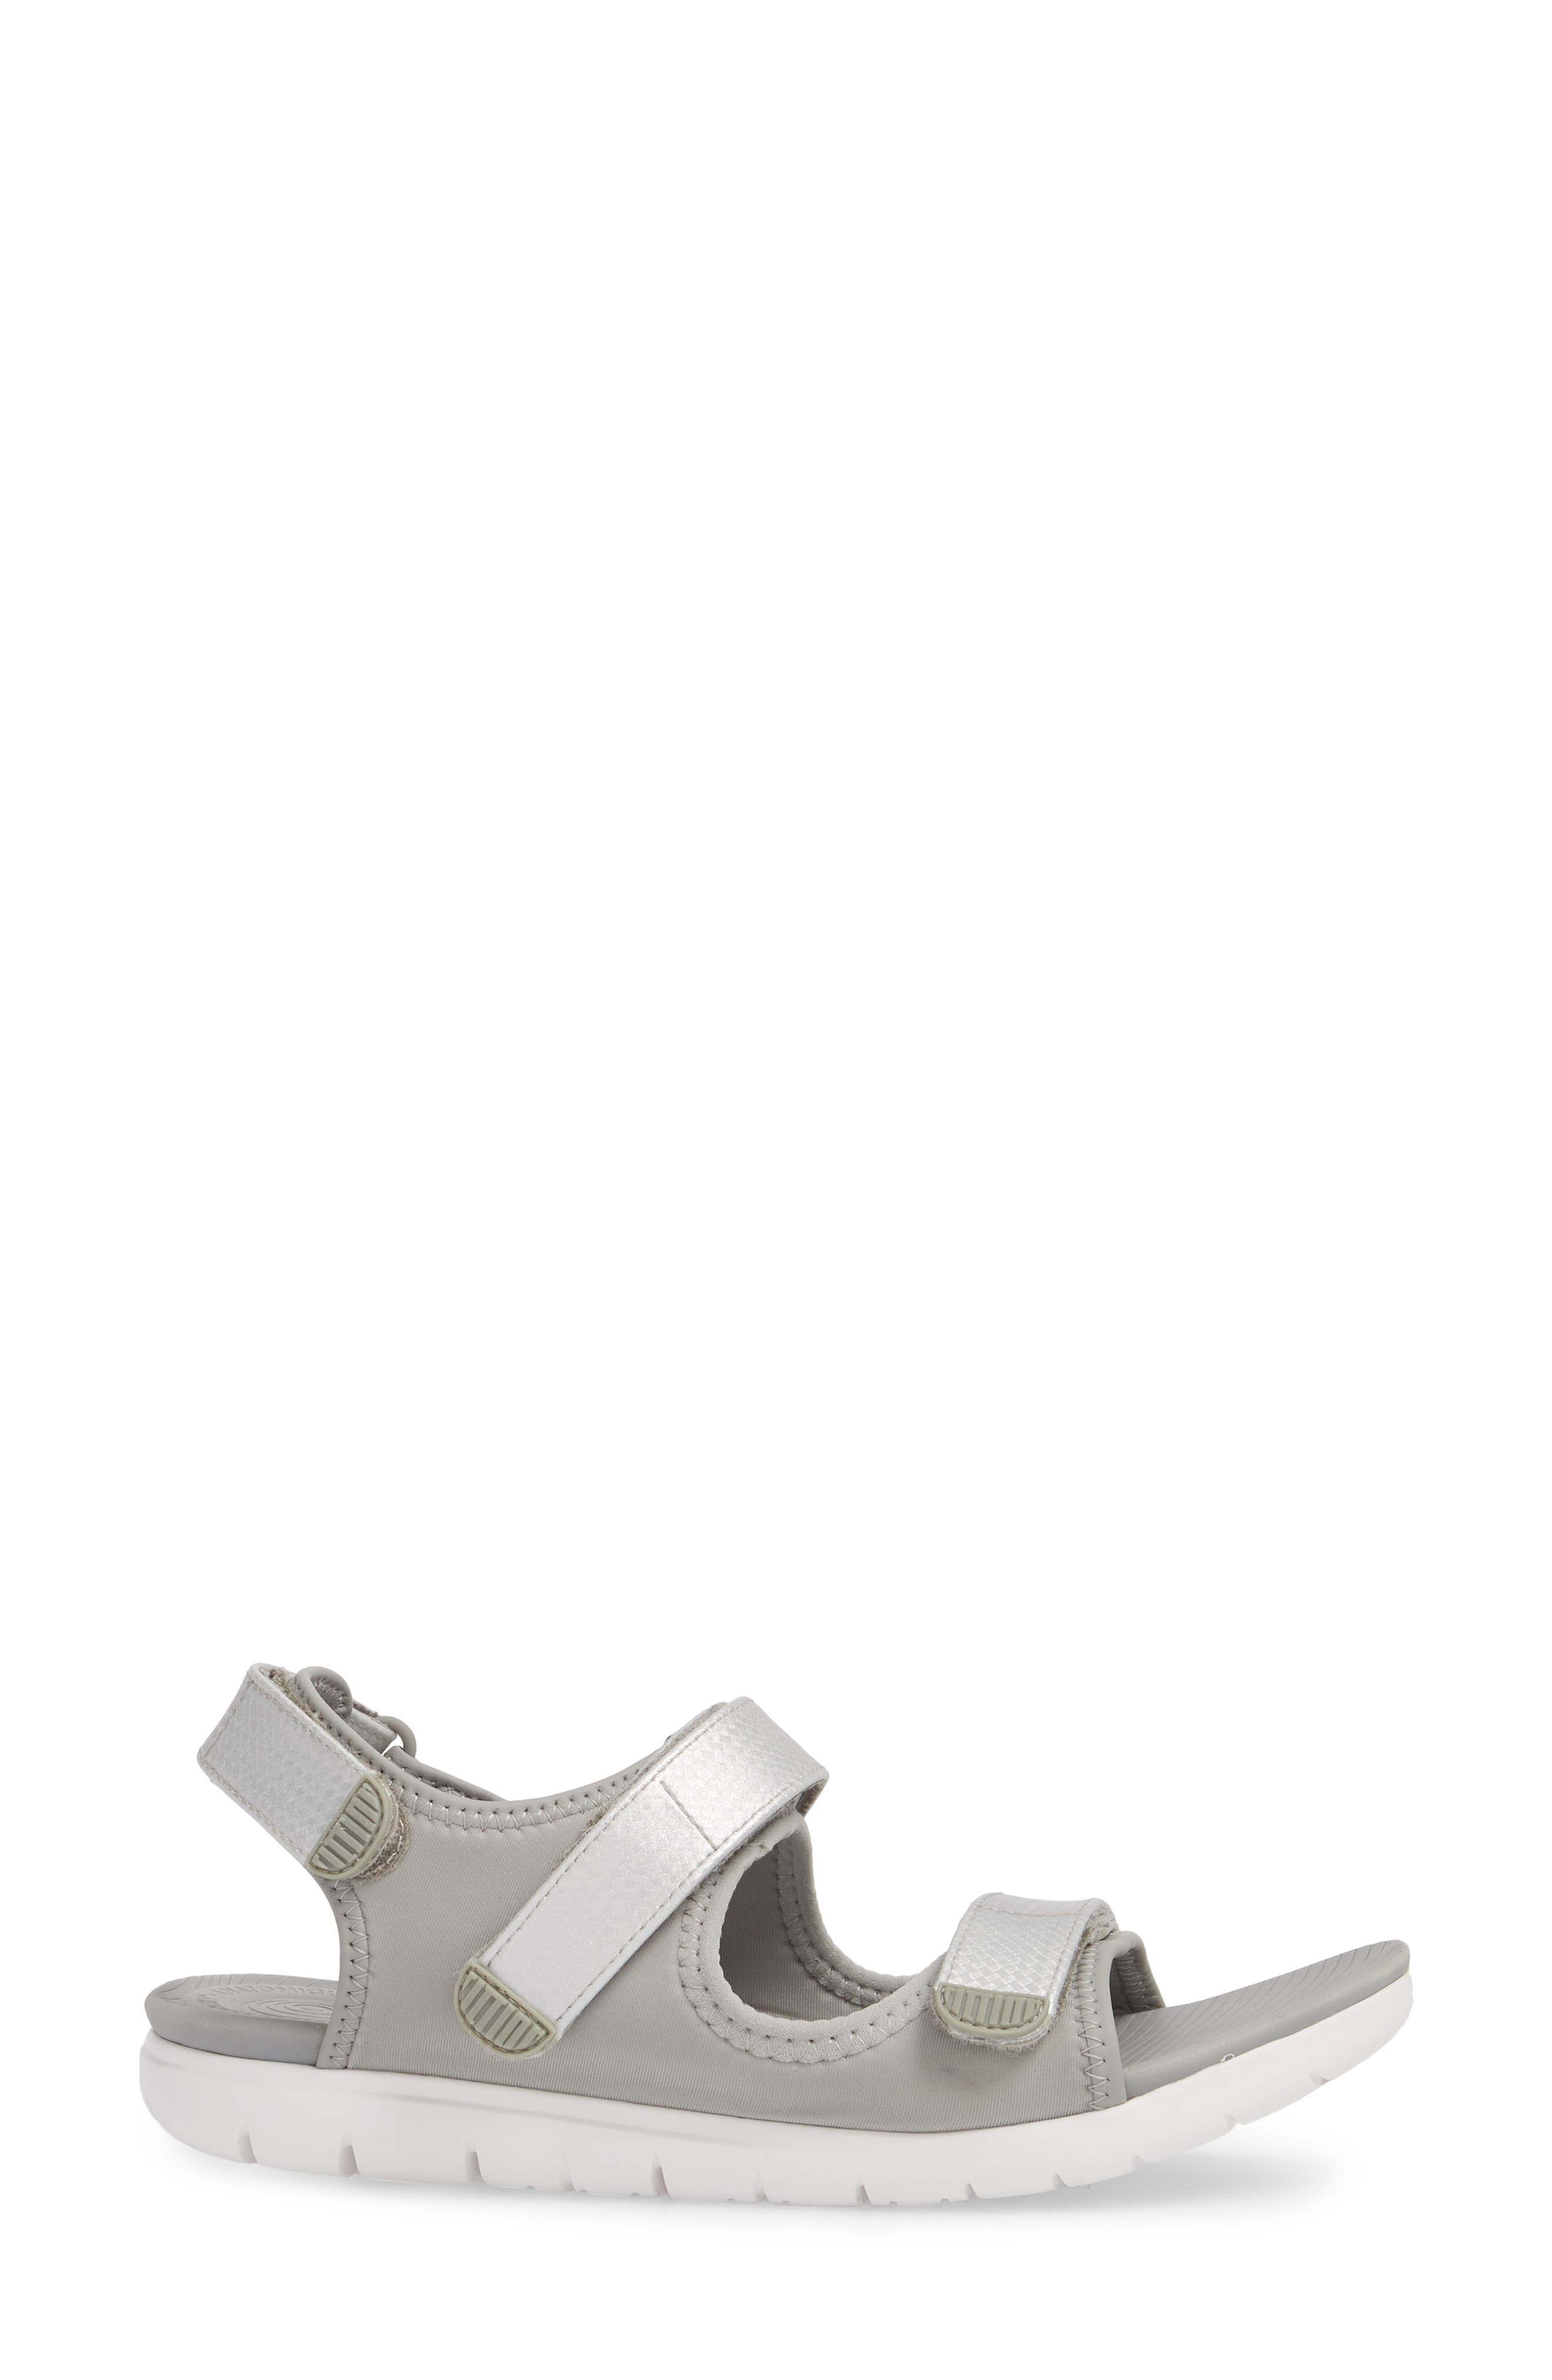 FitfFlop Neoflex<sup>™</sup> Back Strap Sandal,                             Alternate thumbnail 3, color,                             SOFT GREY/ SILVER LEATHER